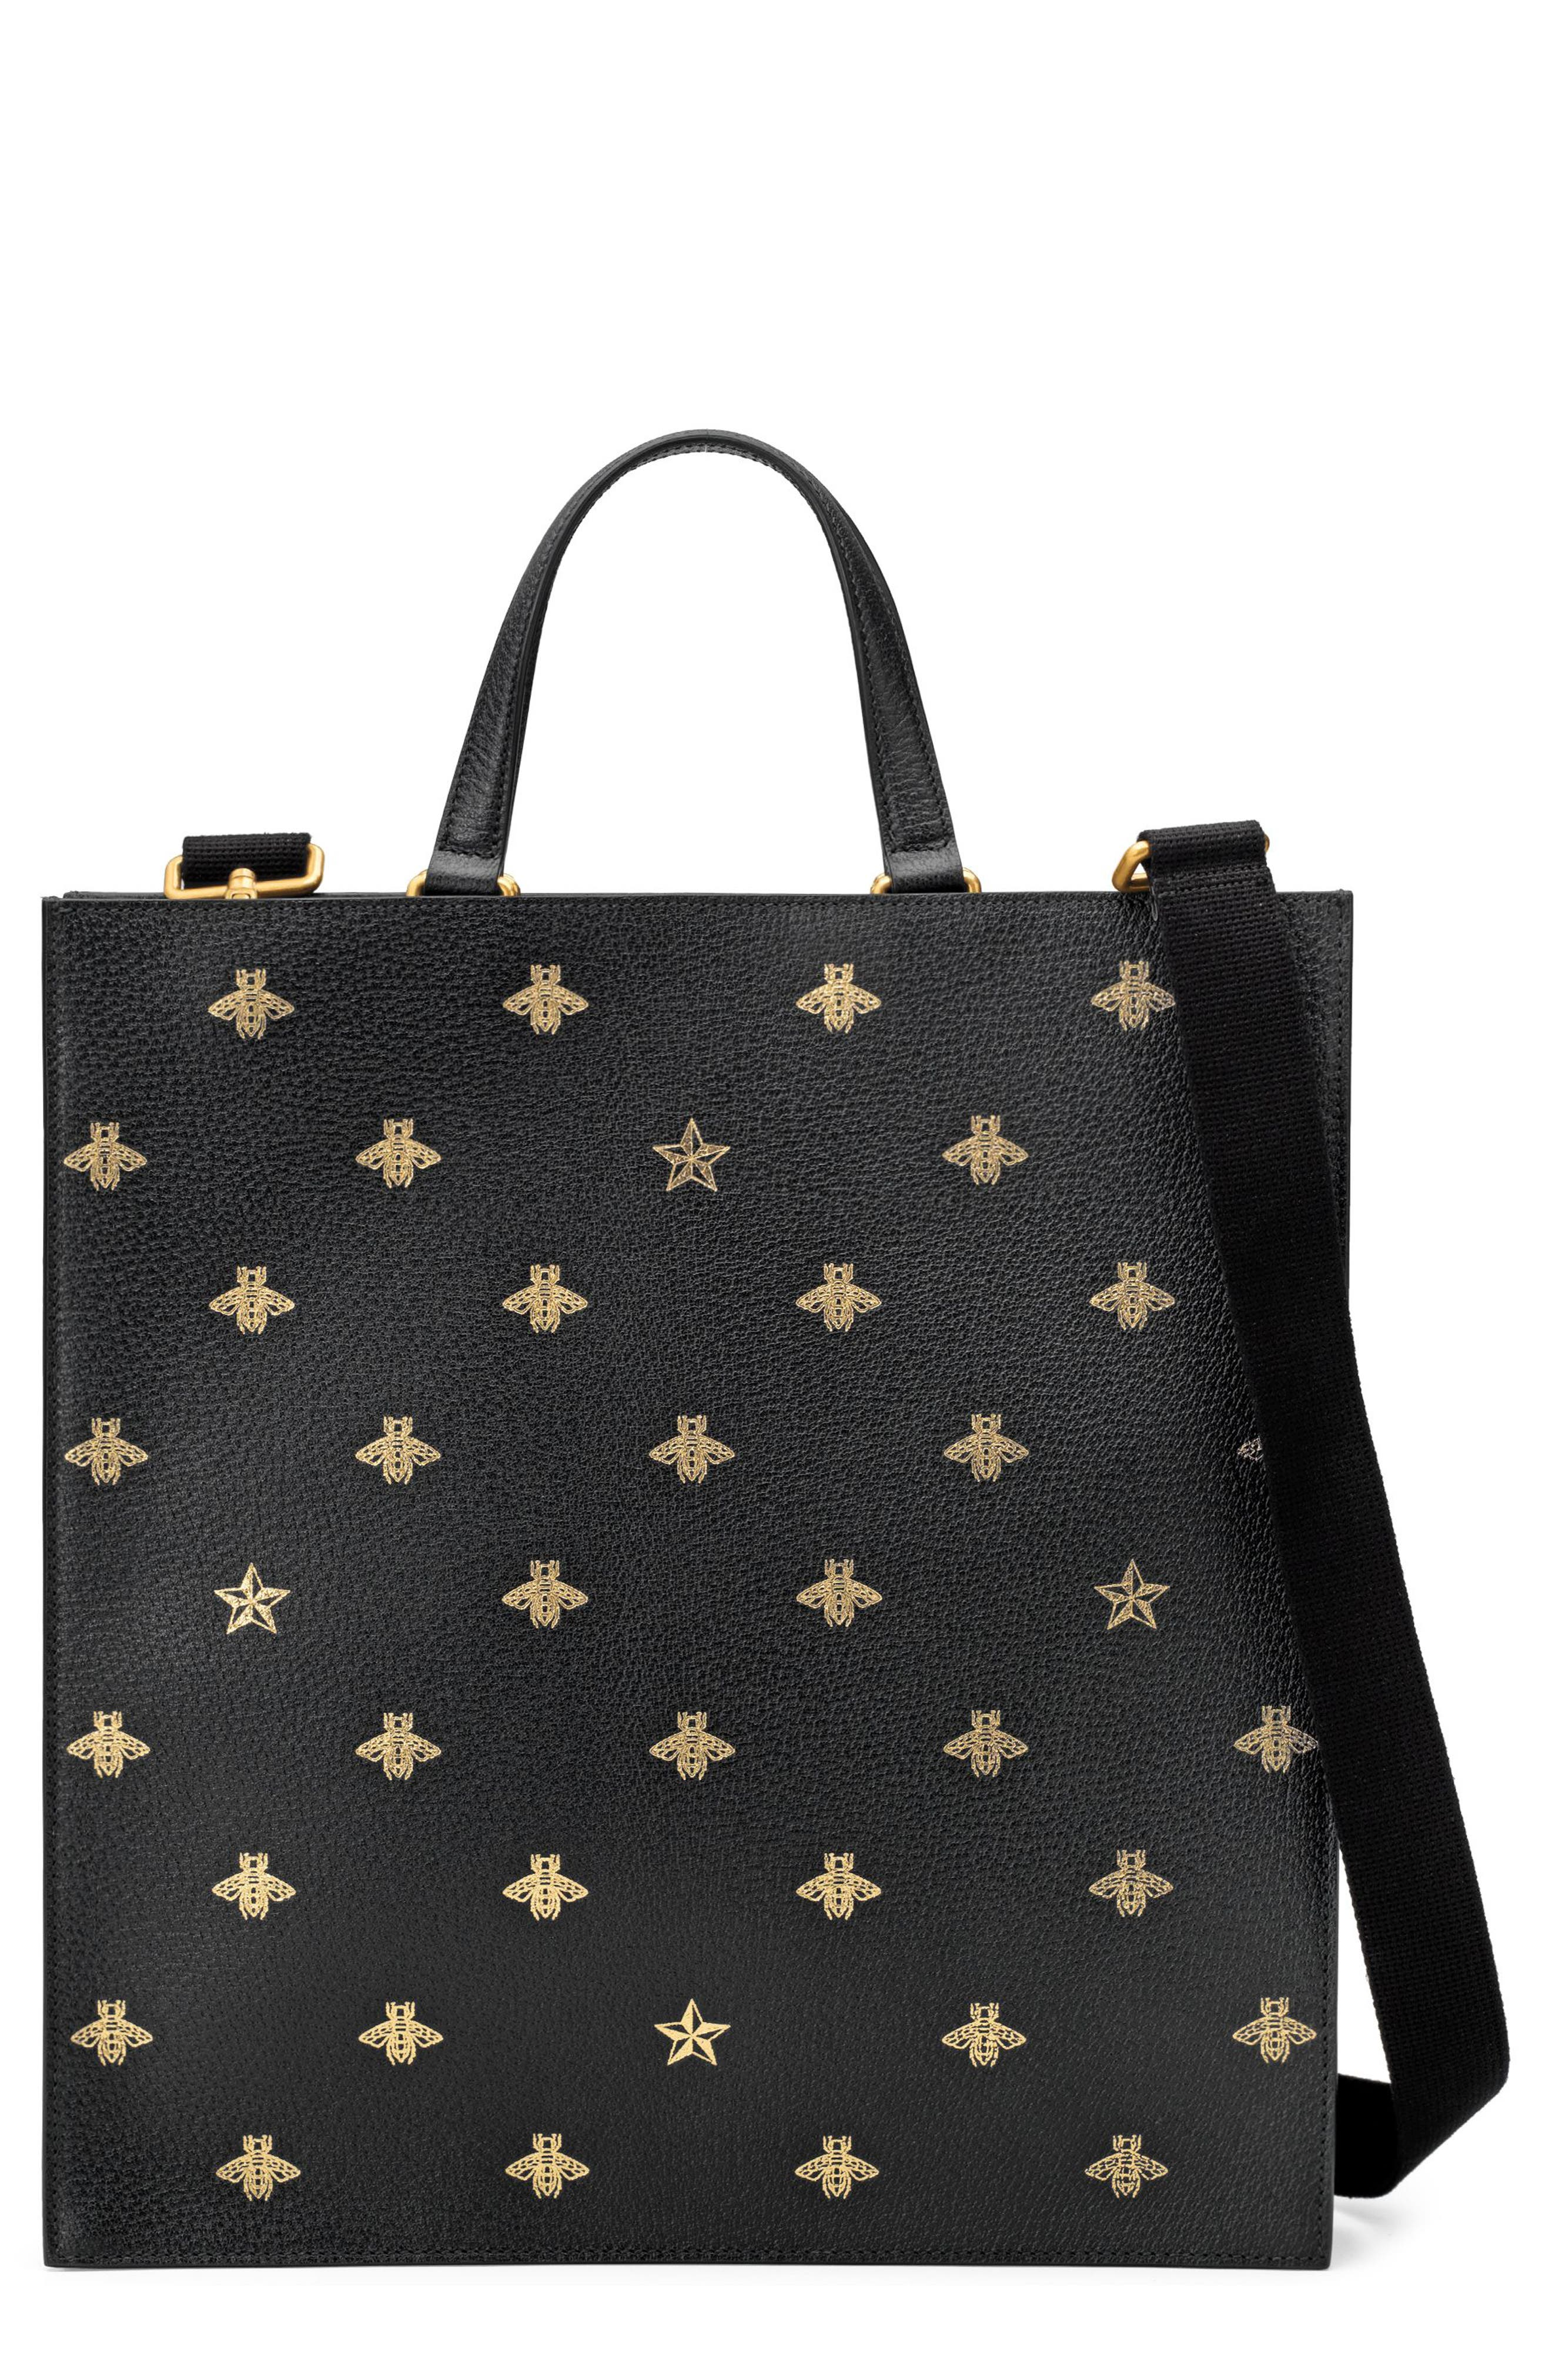 Alternate Image 1 Selected - Gucci GG Supreme Leather Tote